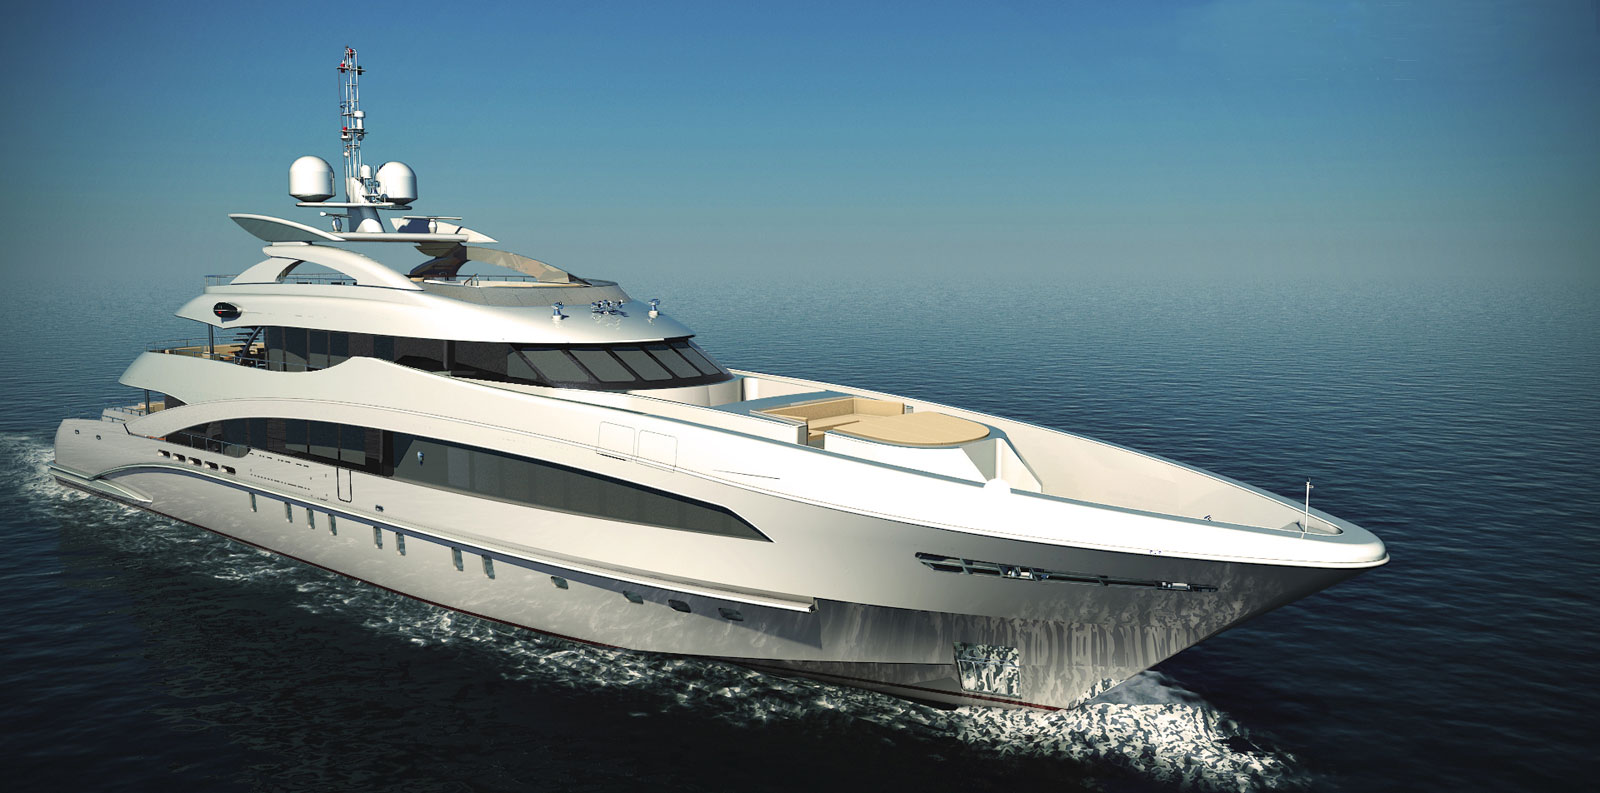 Ice Angel – Hessen Yachts' New 50-meter Luxury Yacht